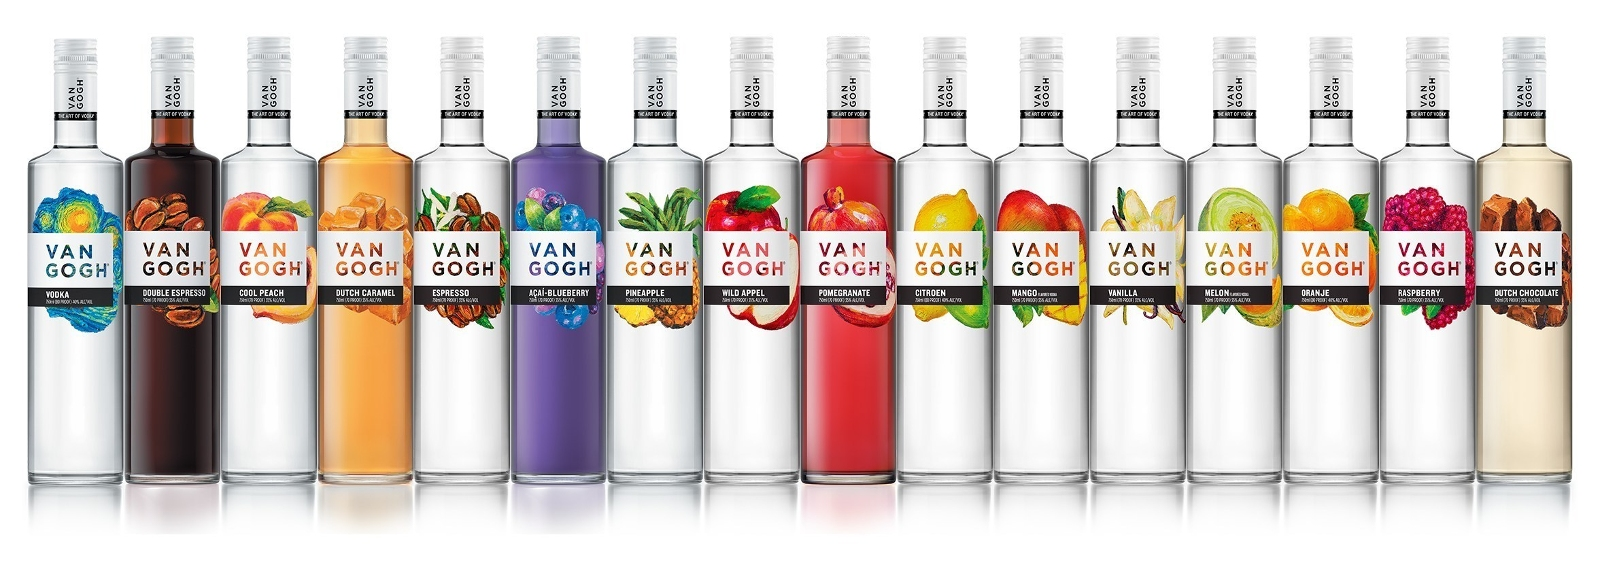 Van Gogh Vodka Introduces Bold New Packaging